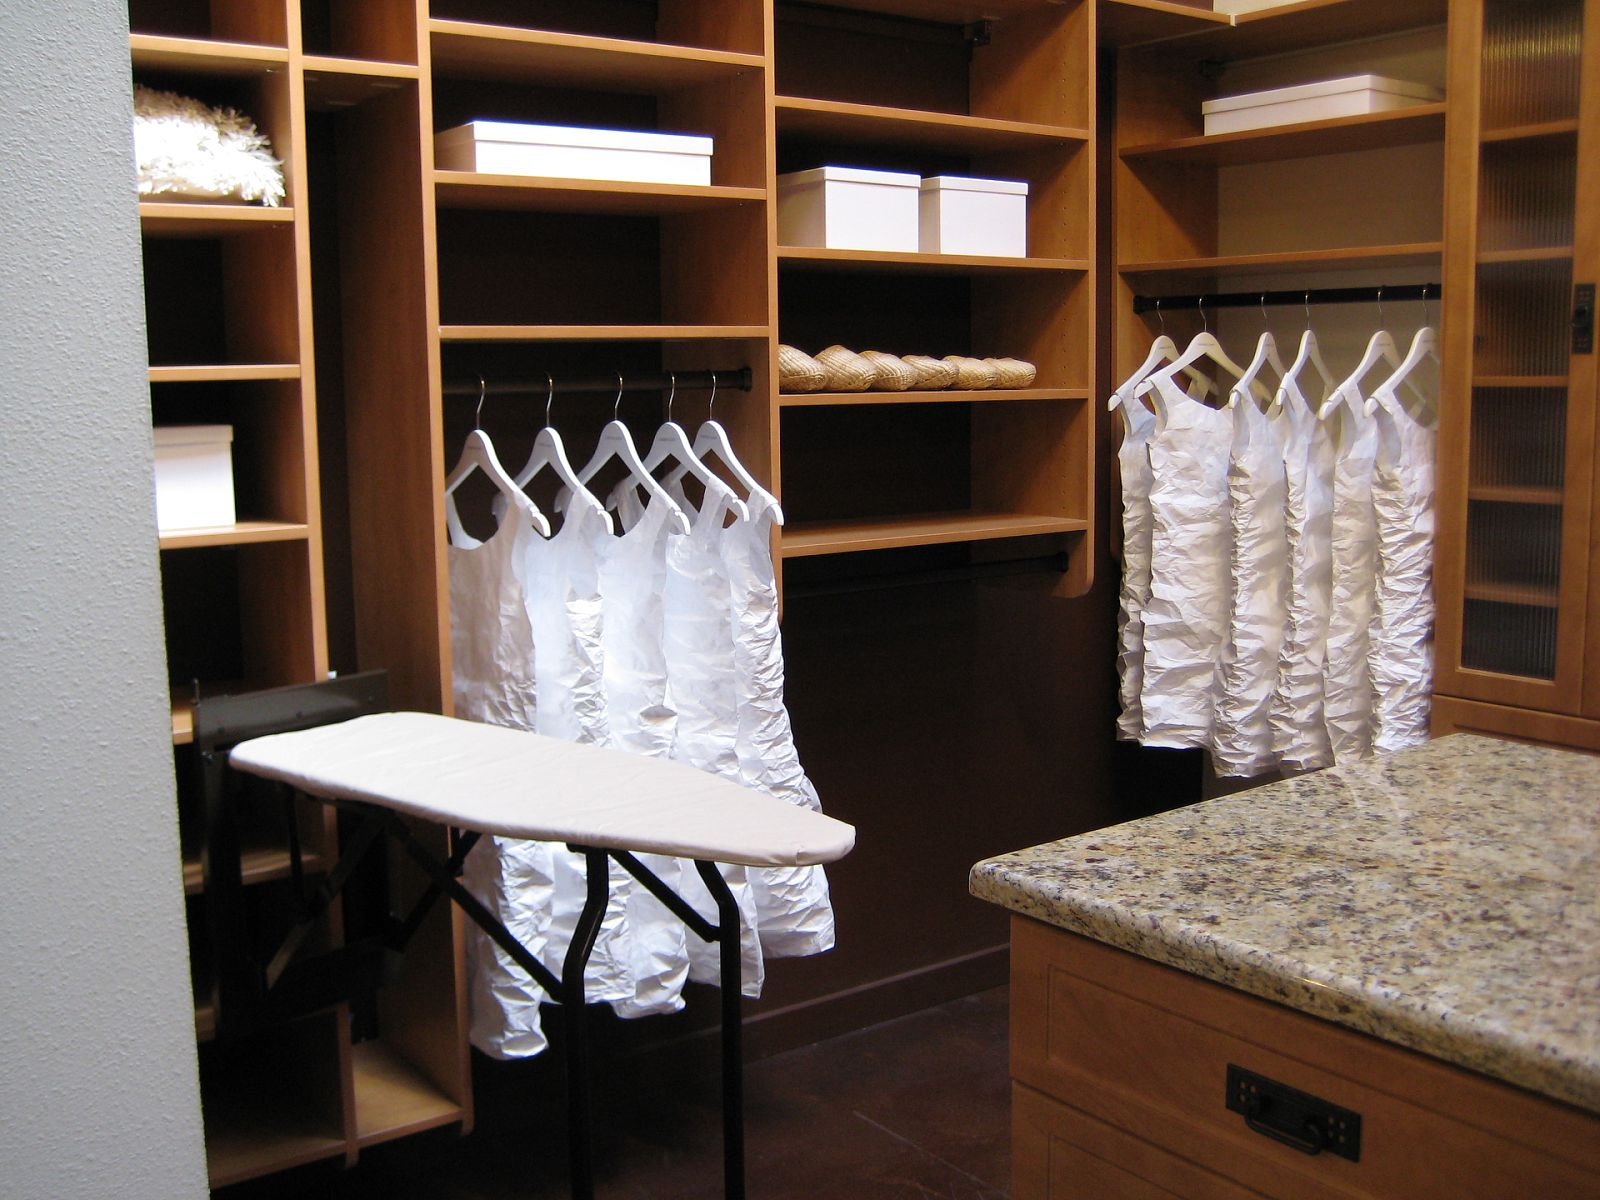 California closets las vegas - Custom Closets Nyc Califoria With Wardrobe And Shoe Boxes And Iron Board Plus Table